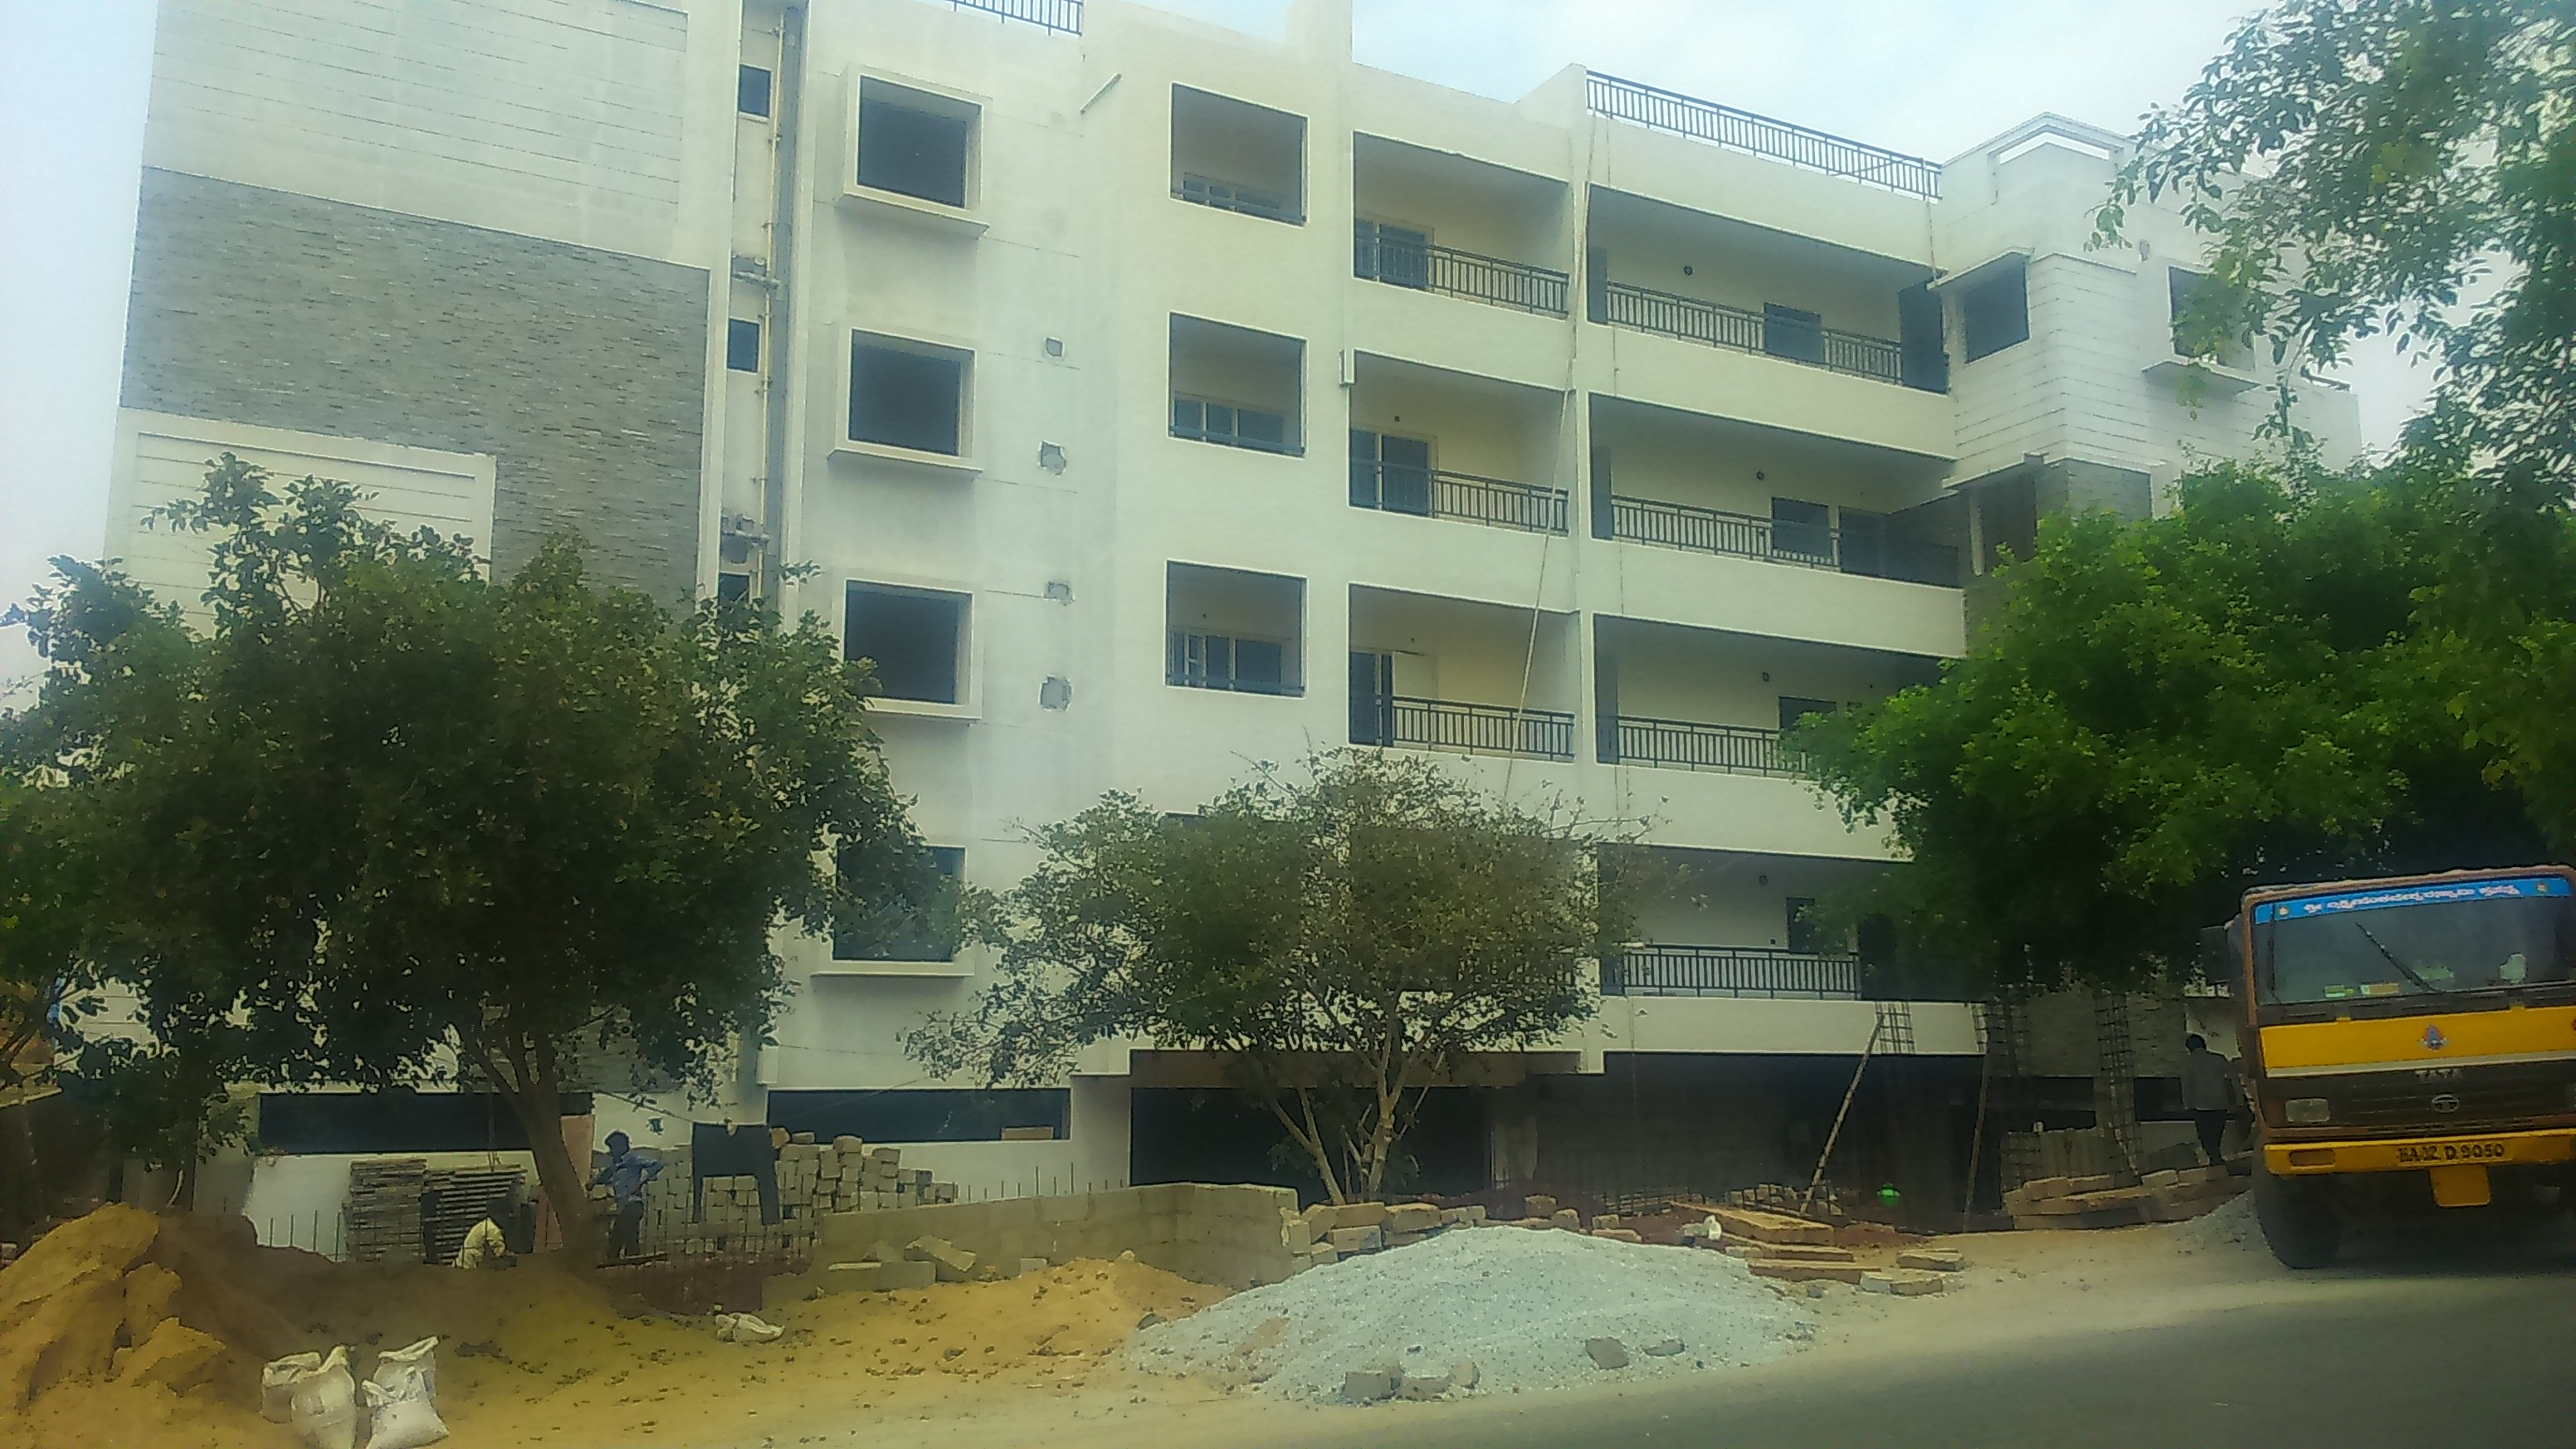 2& 3 BHK FLATS AT ITI LAYOUT NAGARABHAVI  This property located at ITI layout nNagarabhavi From the Ring Road 1.5 KMS  Land mark DEEPA Complex  With all Amenities like  Rain water Harvesting  Covered Car Parking Cauvery Water Toddlers Swimming pool Landscape Garden Children Play Area Joggers Track Intercom Round the clock Securities. Indoor club House Modern Gym Table Tennis Indoor game Multipurposeparty hall                 POWER BACKUP Generater For lighting in Common Area and for common Fecilities Thank you Shivaji N       East 2 BHK 997 sfts Rate 3850x997 38 38 450 INCLUDS CAR PARKING BESCOM BWSSB Only   Registration and vat cost will be the extra.  East 2 BHK 1232 sfts Rate 3850 1232 47 43 200 INCLUDS CAR PARKING BESCOM BWSSB Only   Registration and vat cost will be the extra.  North 3 BHK 1479 sfts Rate 3850 1479 56 94 150 INCLUDS CAR PARKING BESCOM BWSSB Only   Registration and vat cost will be the extra.  North 3 BHK 1587 sfts Rate 3850 1587 61 09950 INCLUDS CAR PARKING BESCOM BWSSB Only   Registration and vat cost will be the extra.  East 3 BHK 1667 sfts Rate 3850 1667 64 17 950 INCLUDS CAR PARKING BESCOM BWSSB Only   Registration and vat cost will be the extra.   Thank you Regards